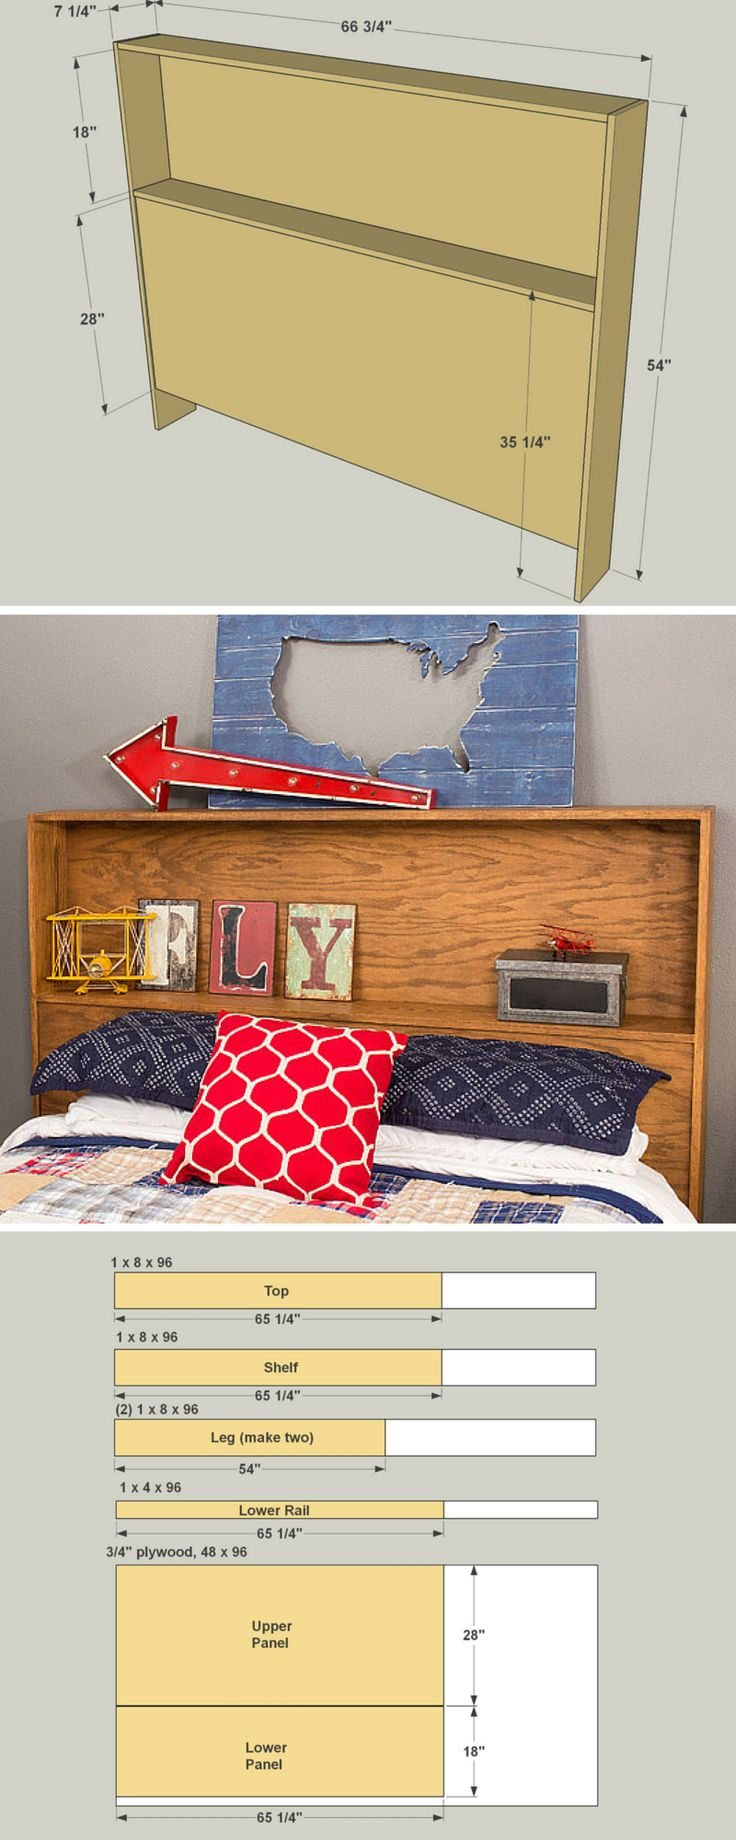 How to Build a DIY Storage Headboard | Free Printable Project Plans on buildsomething.com | This headboard offers a storage shelf behind your head, plus another up above. It's made from just 7 parts, which means you can build one easily with a few basic tools. Depending on the type of wood you choose and the finish you apply, you can make it look traditional or contemporary.